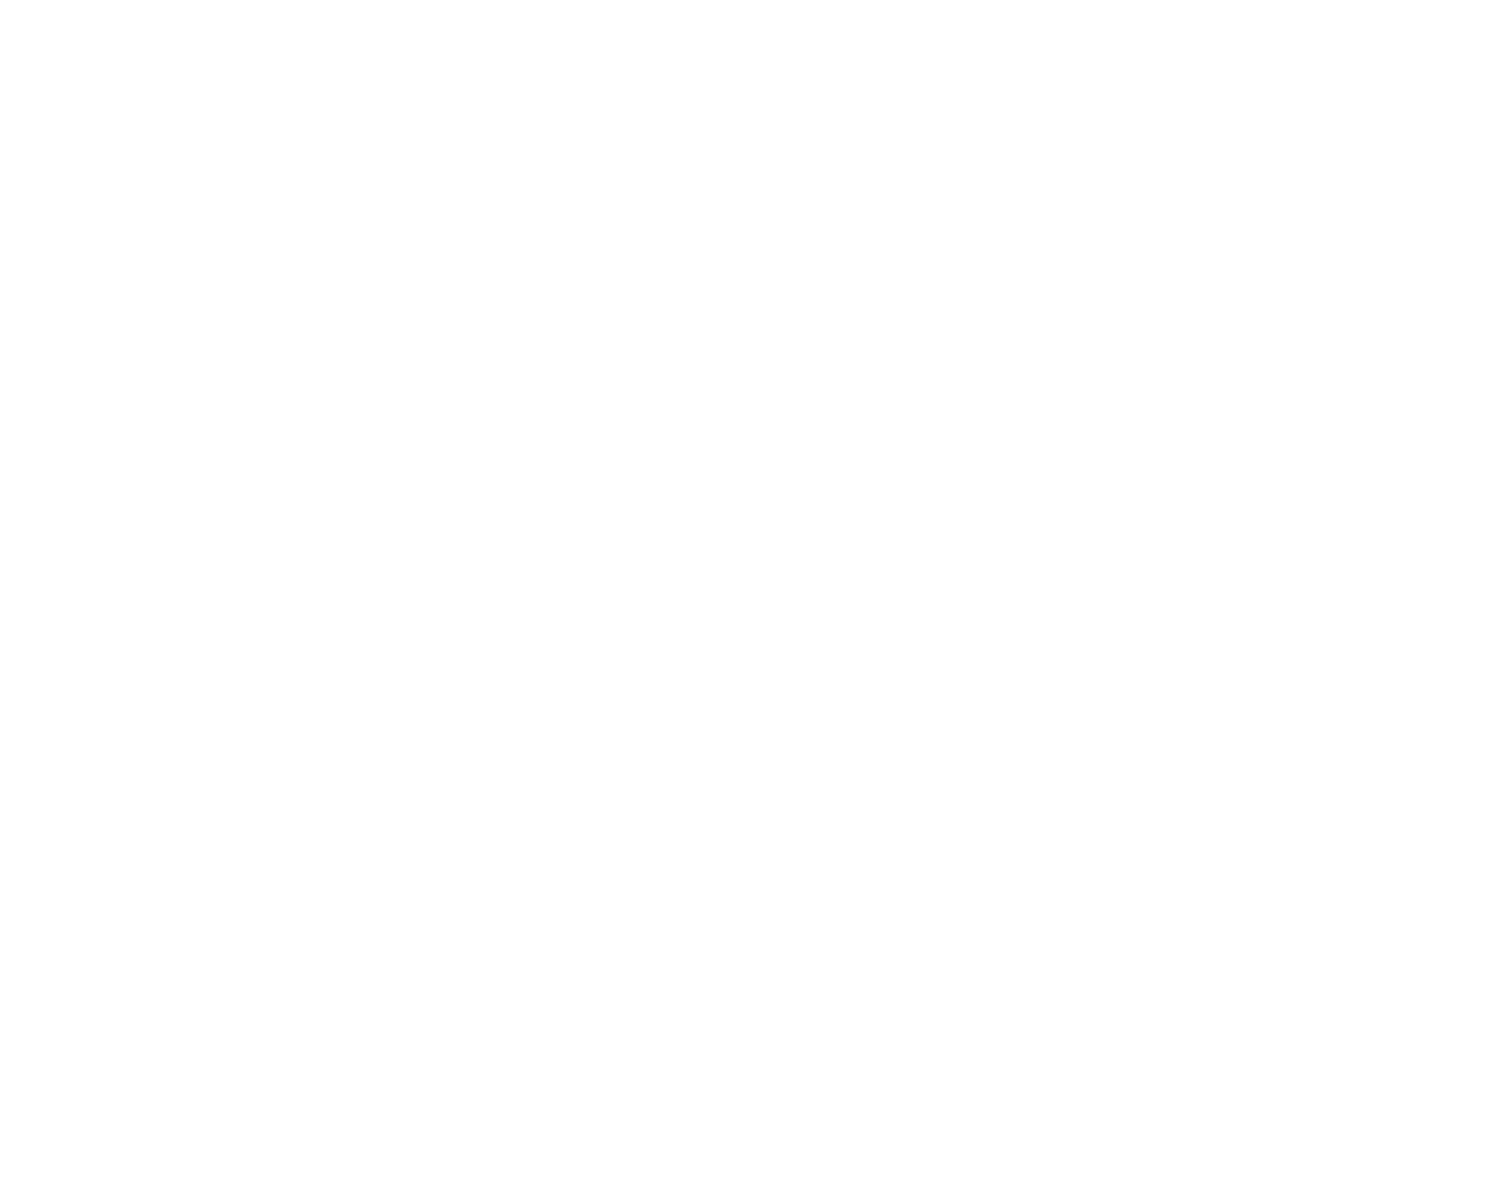 Julie Preston Psychology